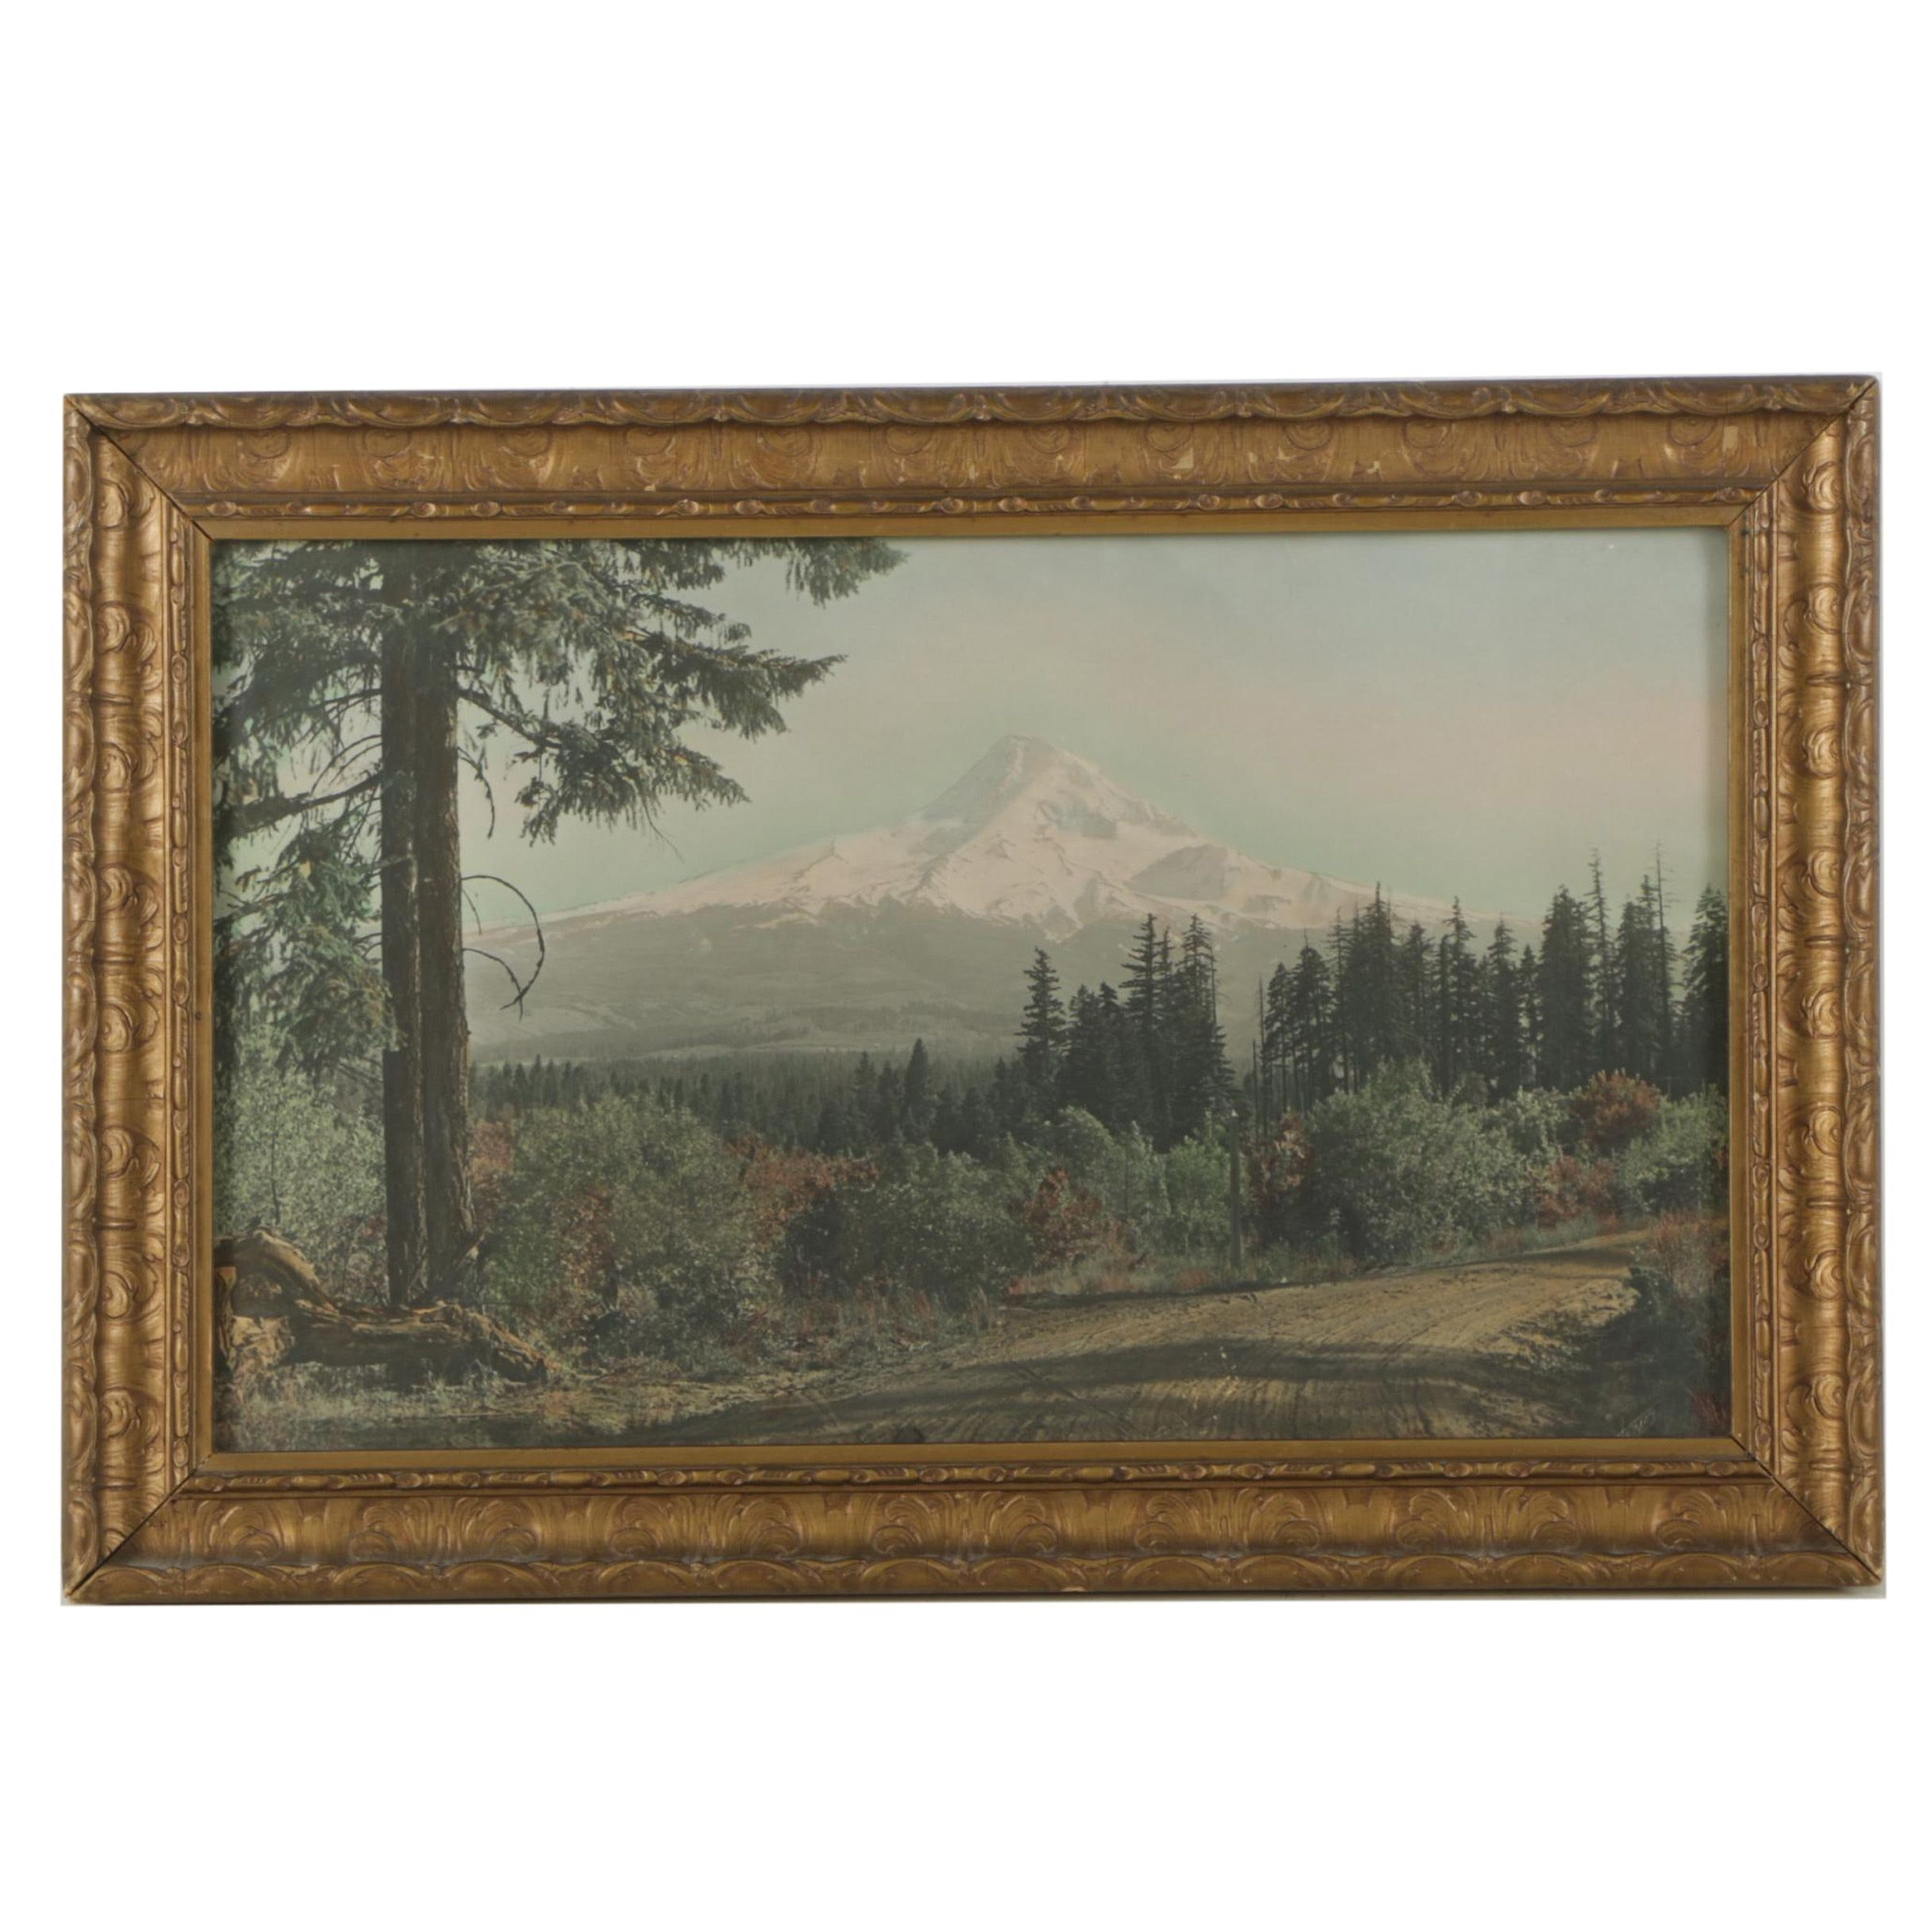 Mid Century Hand Colored Photograph After Thomas of Mountain Landscape